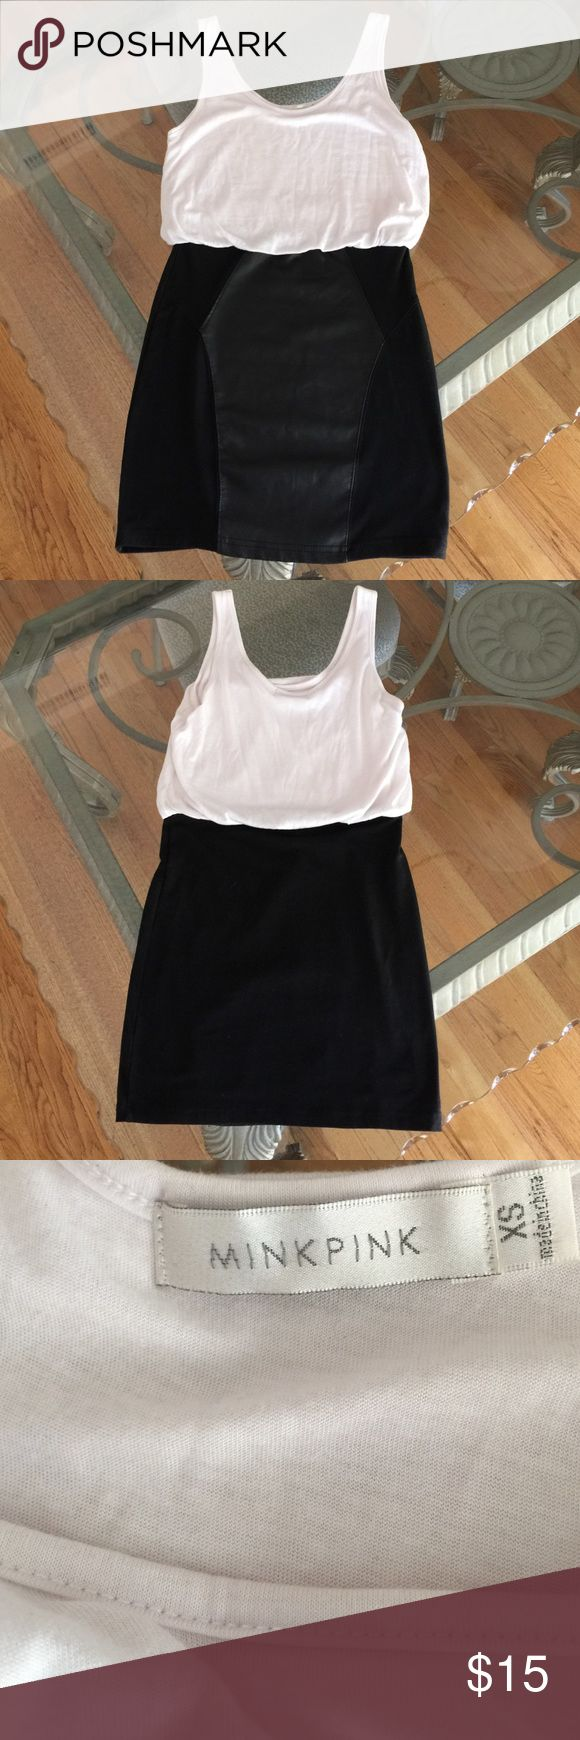 """ASOS MinkPink Tank Dress With Faux Leather, XS MinkPink dress with loose white tank and connected tight black skirt with faux leather in size extra small. Measures 32"""" from shoulder to hem. Please ask if you have any questions. ASOS Dresses Mini"""